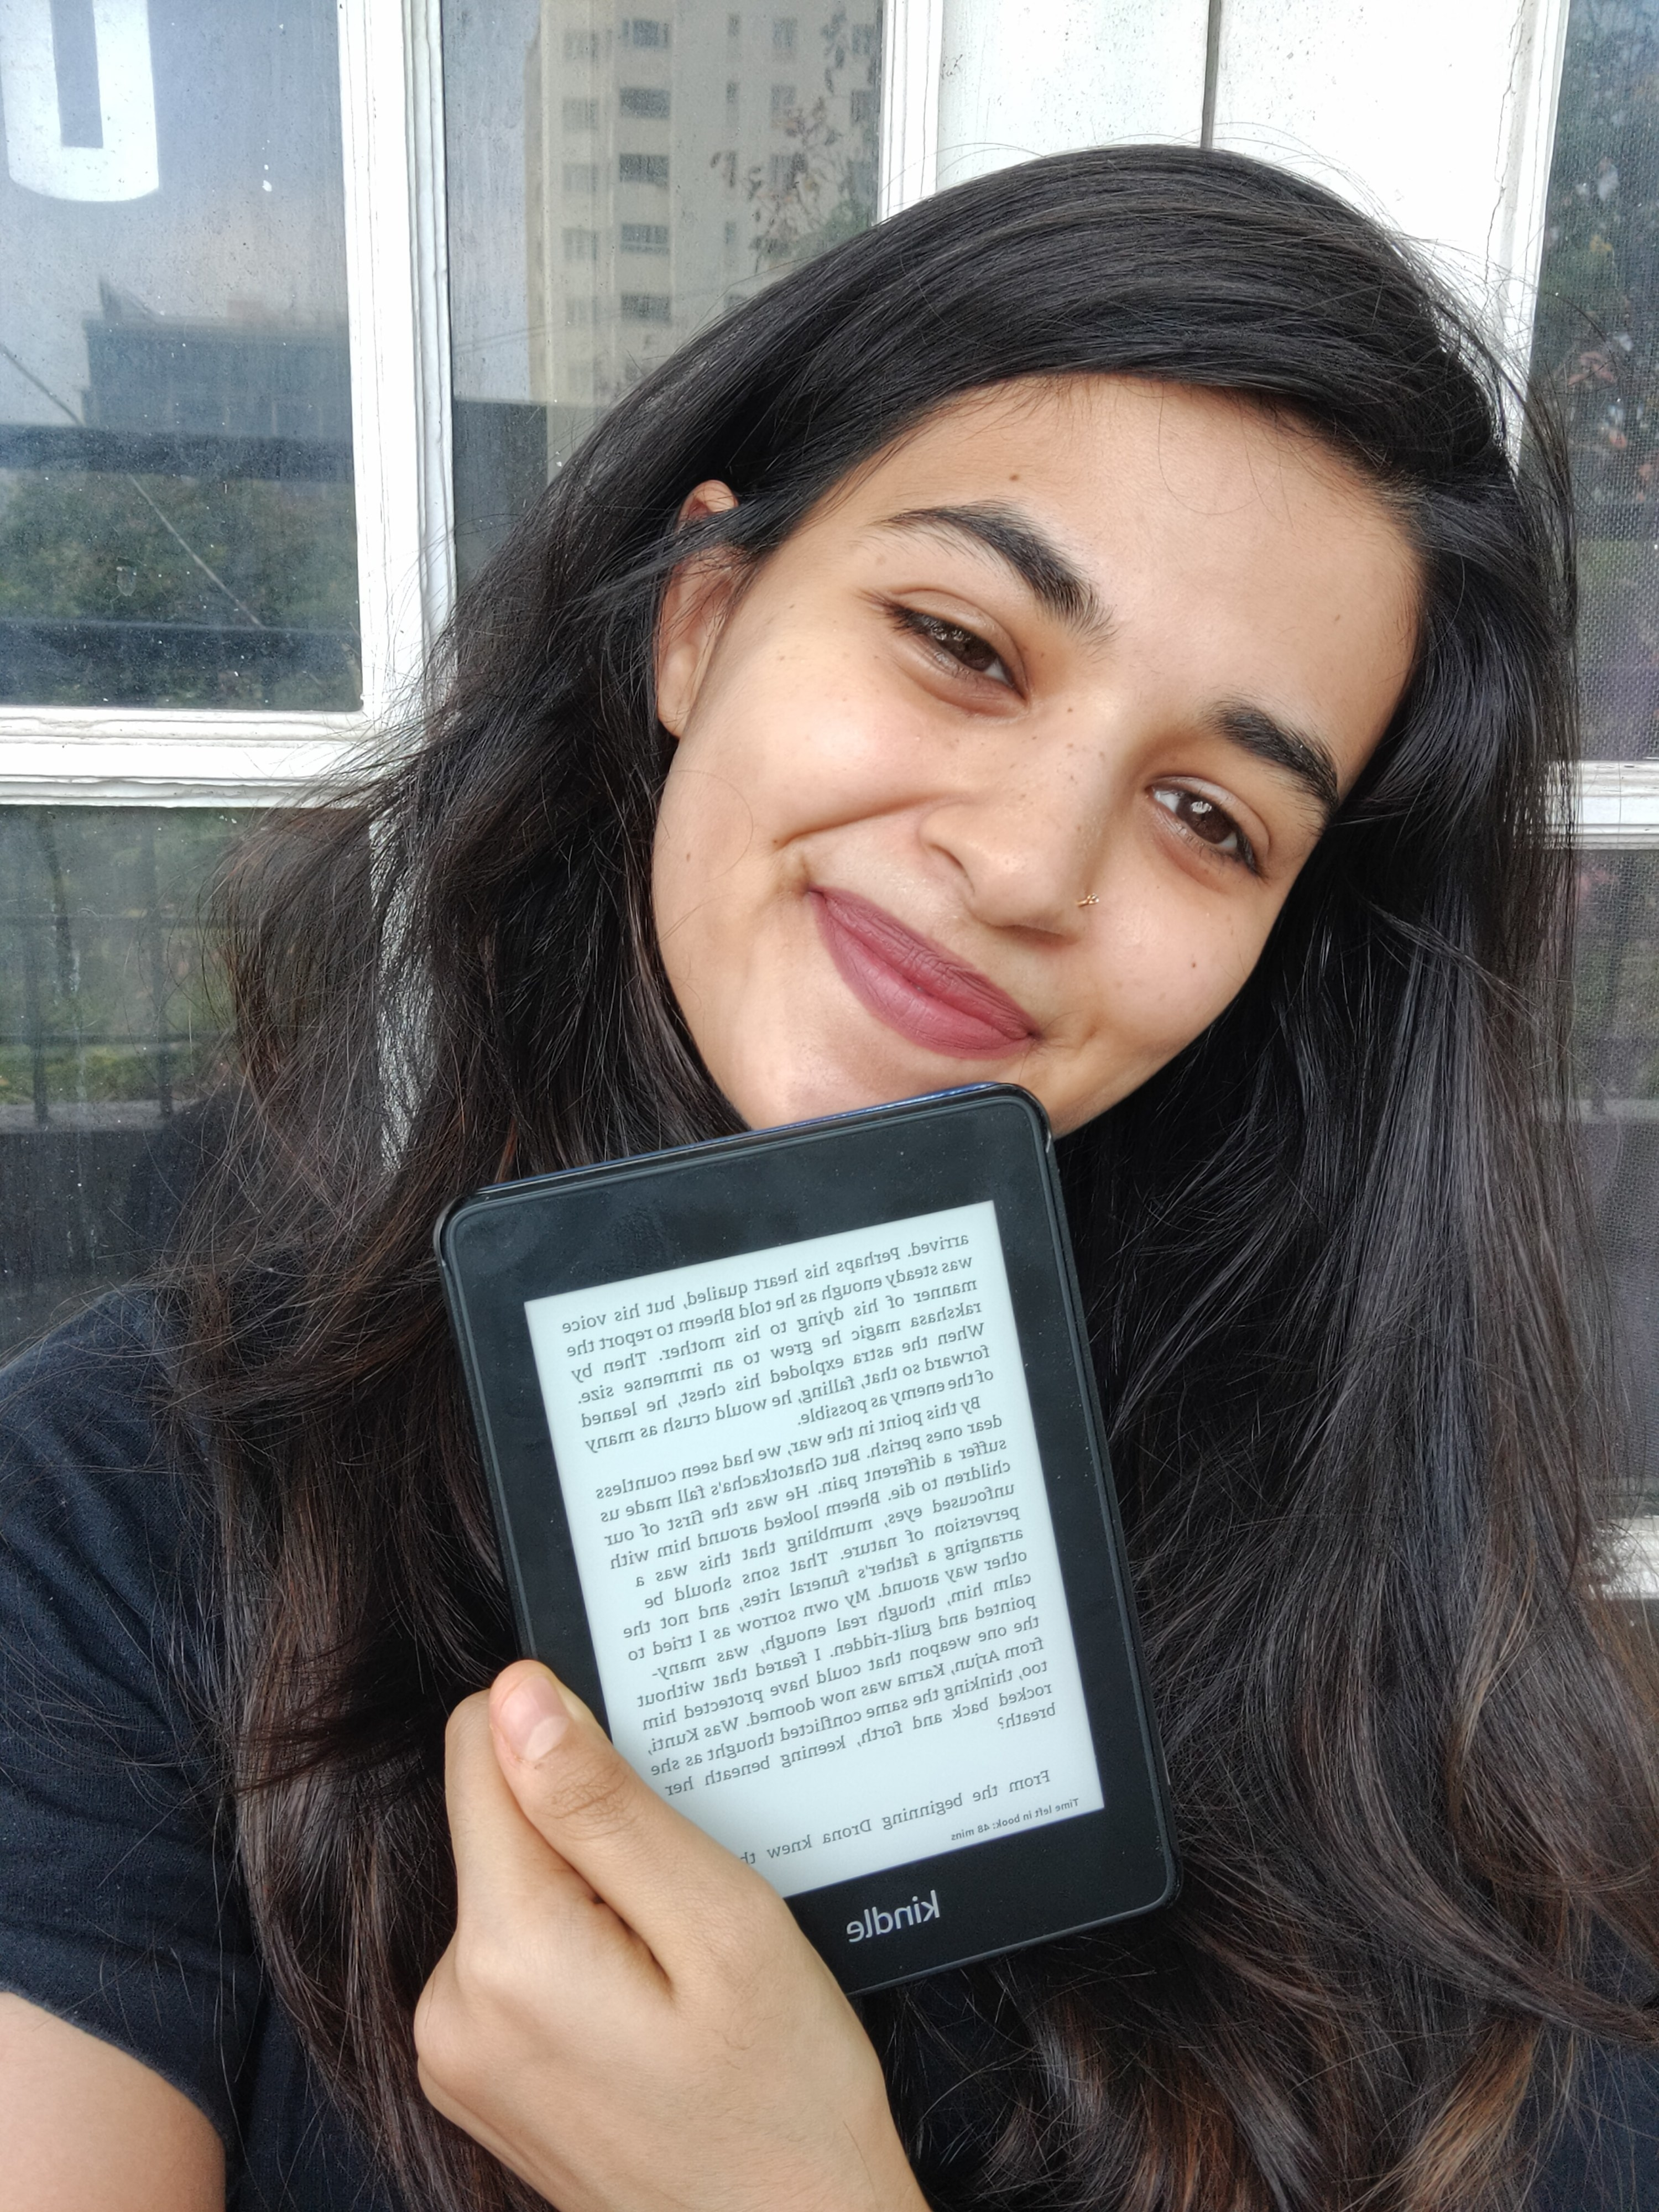 A photo of me holding the Kindle